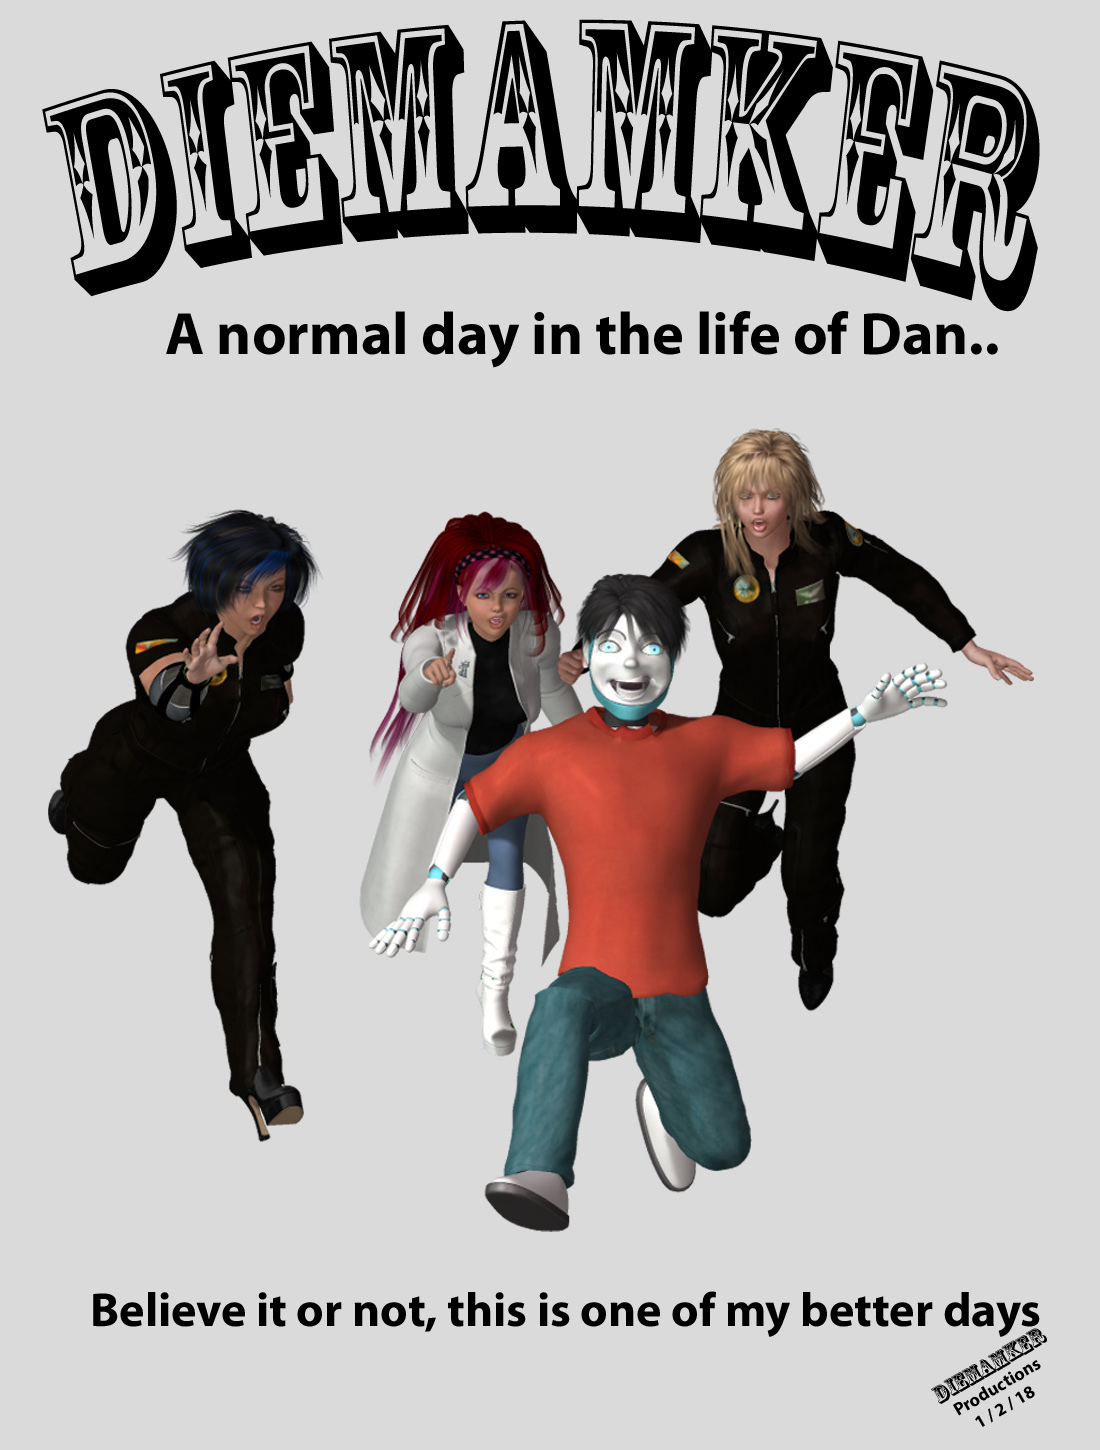 A normal day in the life of Dan... Cover art..